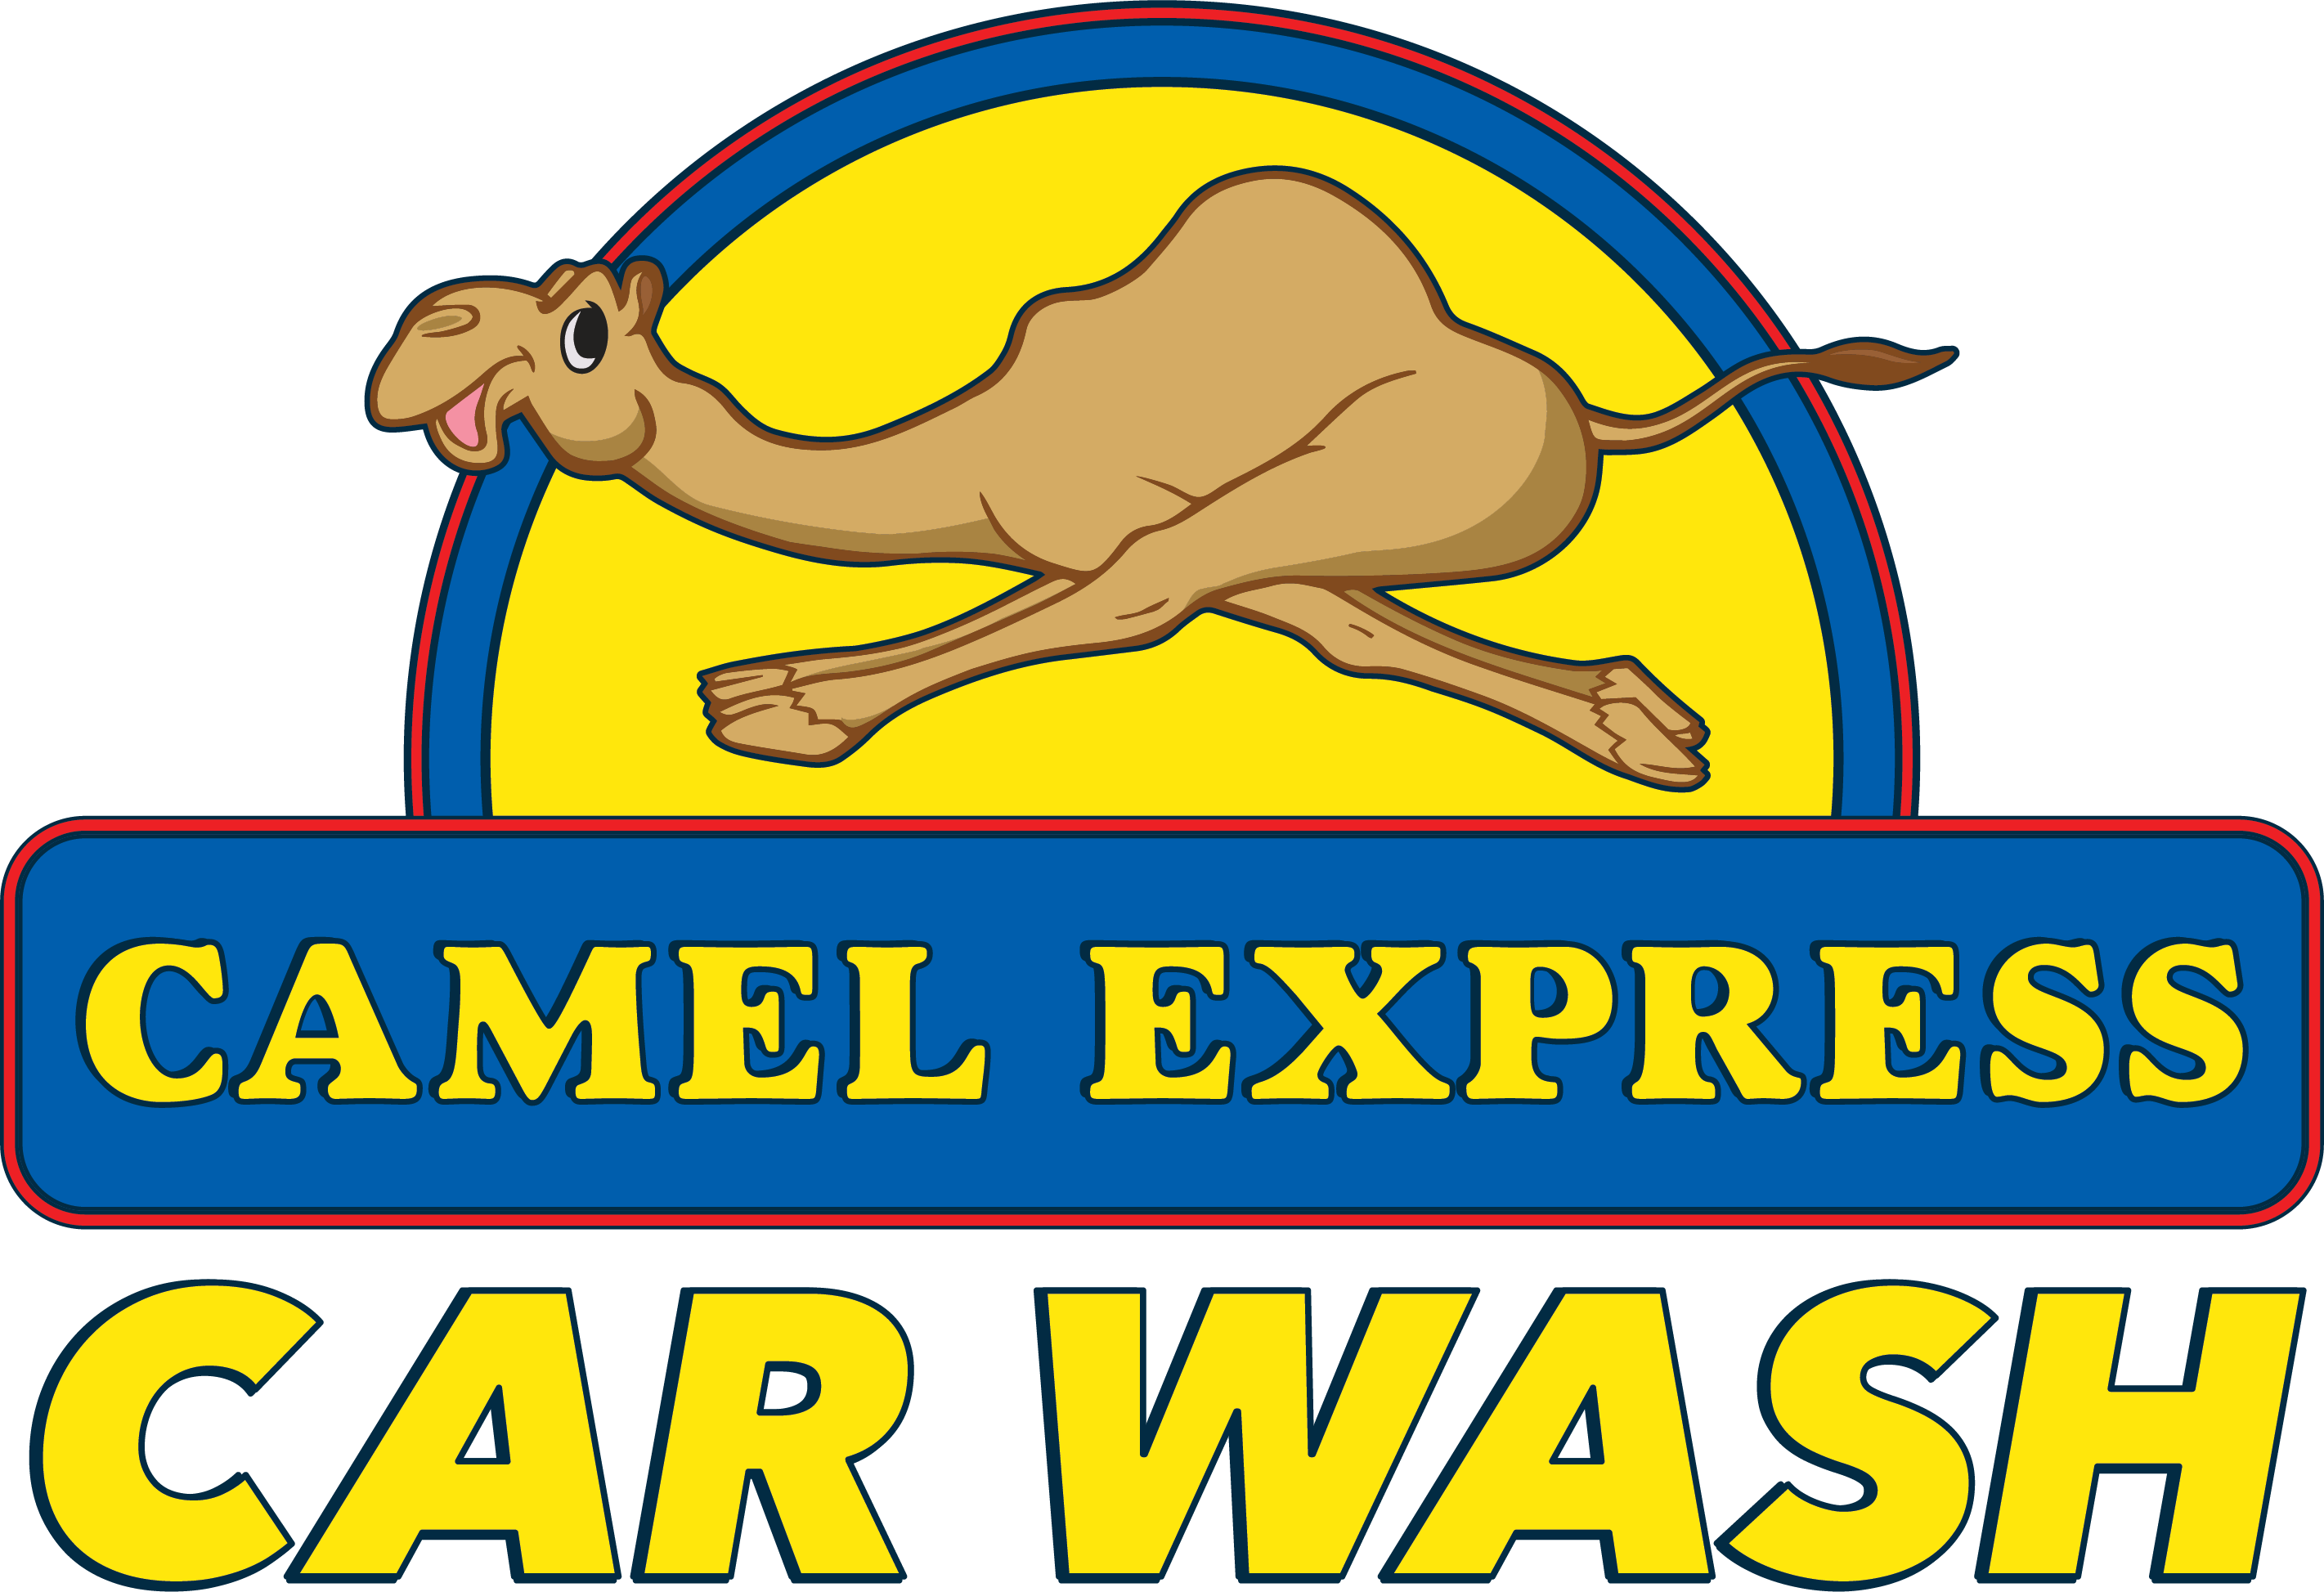 The Camel Express